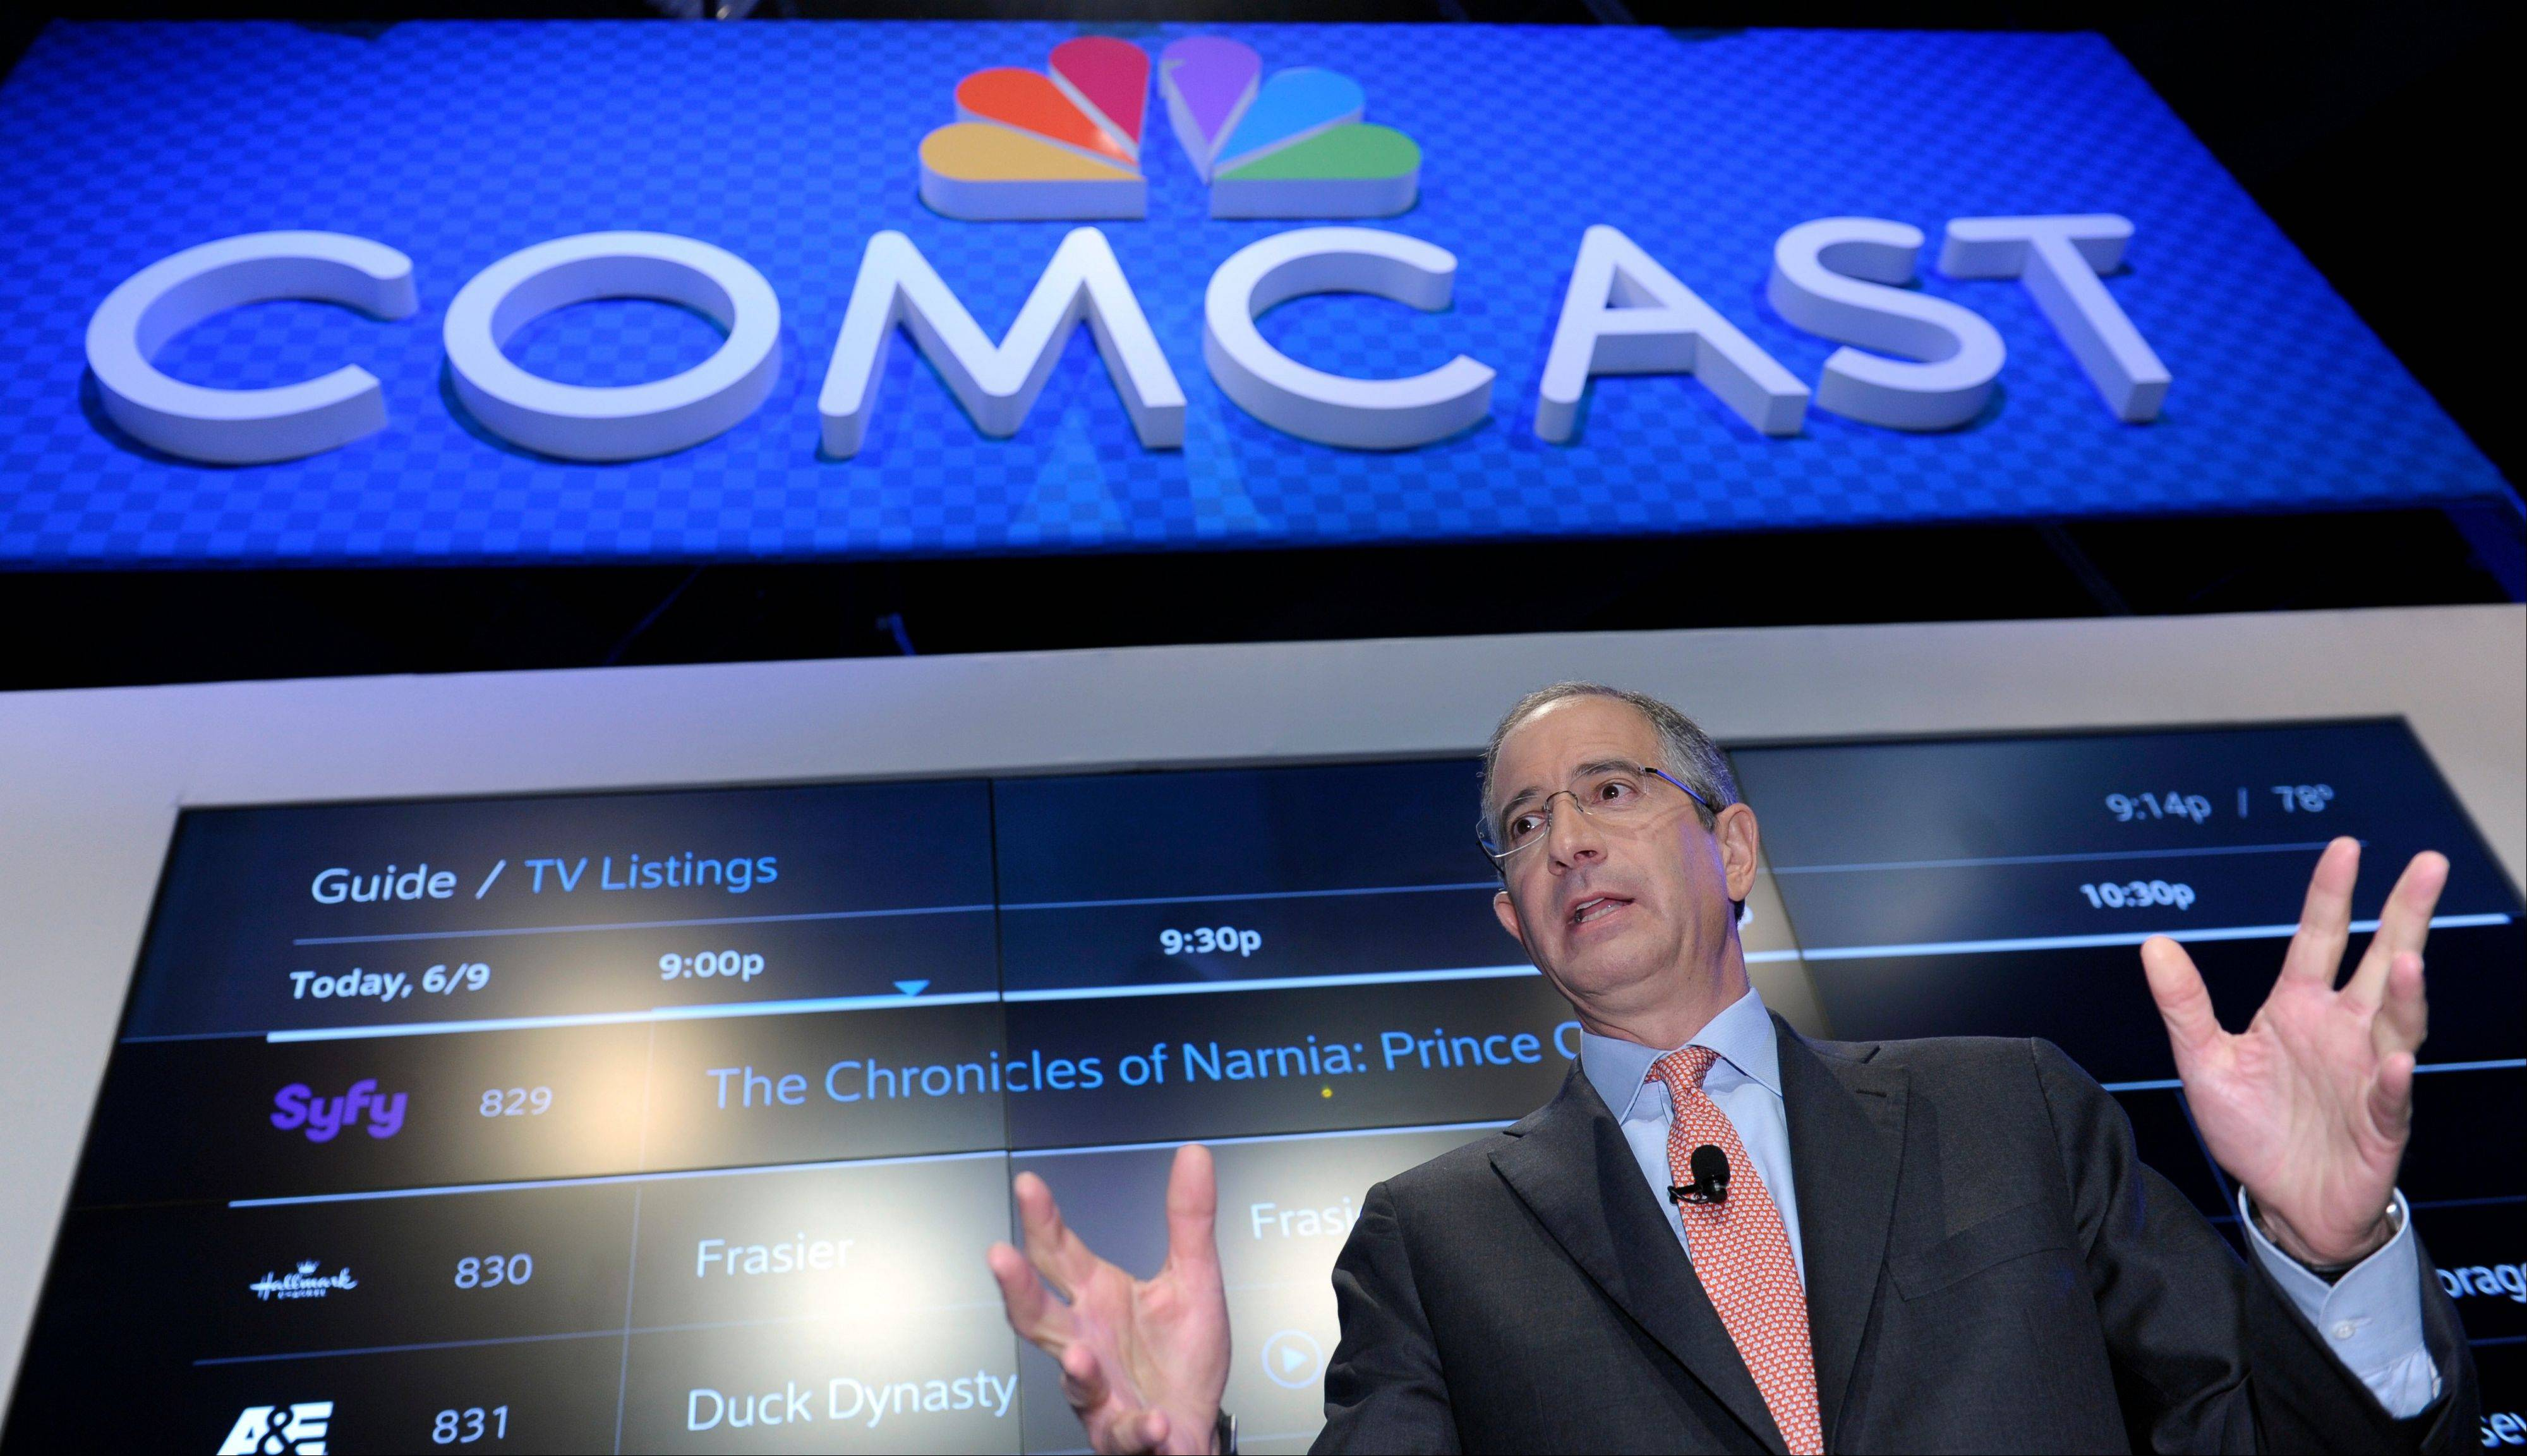 Comcast Corp. CEO Brian Roberts gestures as he speaks during The Cable Show 2013 convention in Washington, Tuesday, June 11, 2013. TV was supposed to everywhere by now _on your smartphone, on your tablet. Your favorite shows were supposed to be watchable anytime, anywhere.